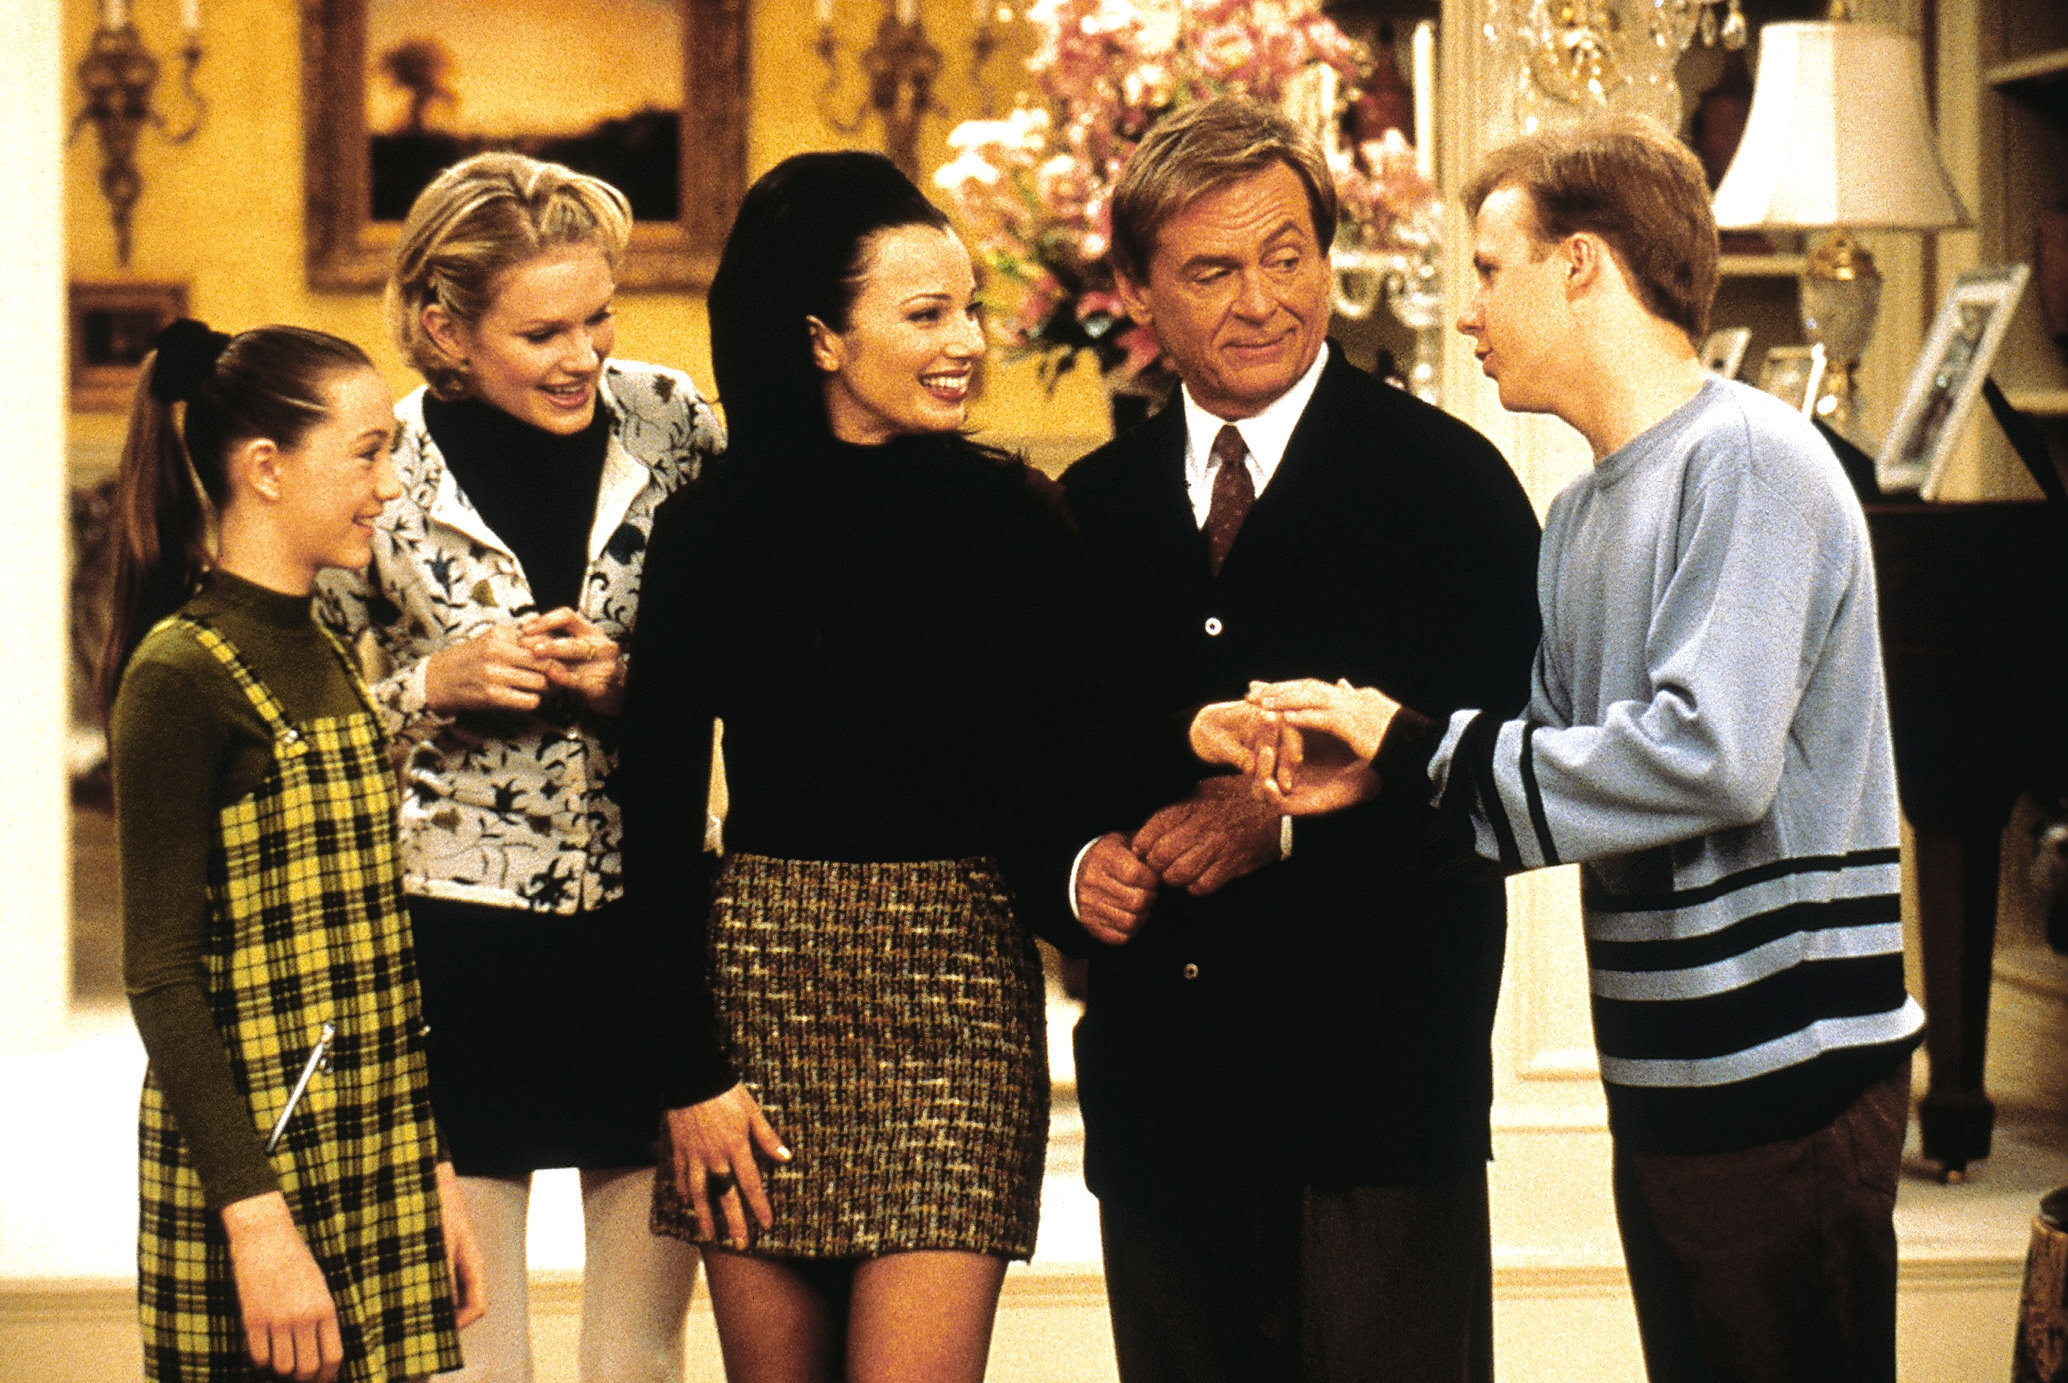 the nanny Find great deals on ebay for the nanny in dvds and movies for dvd and blu-ray disc players shop with confidence.